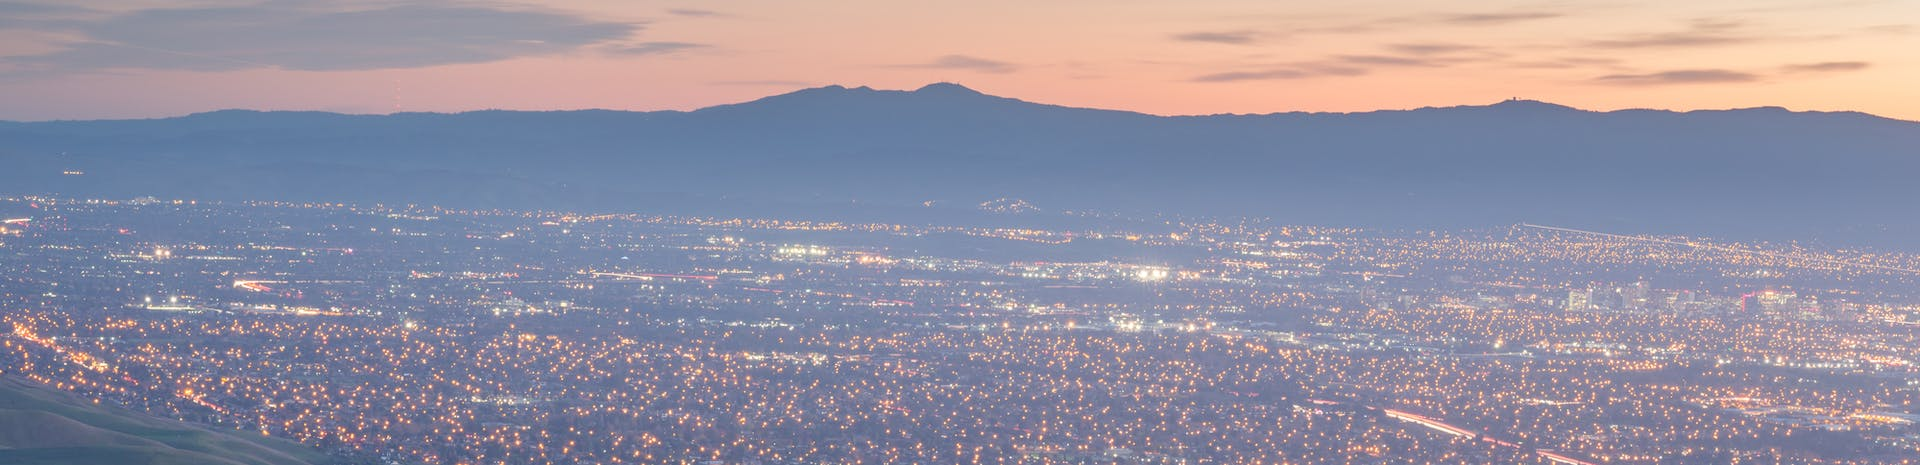 Picture of Milpitas